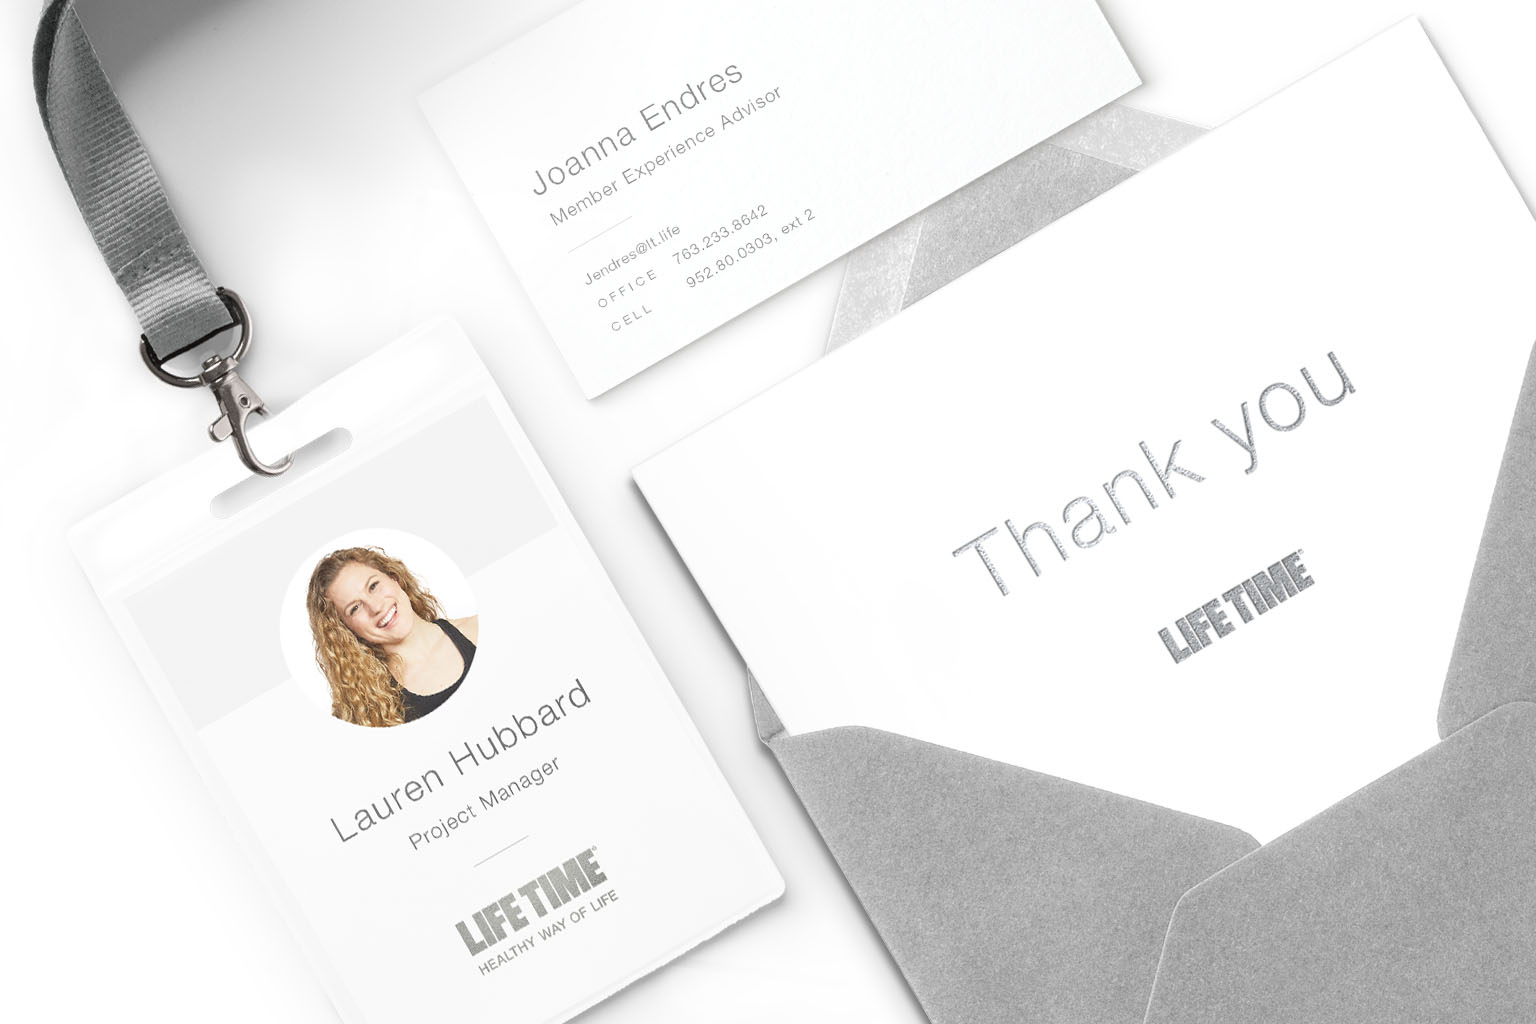 Examples of Life Time business cards, employee badge and stationery